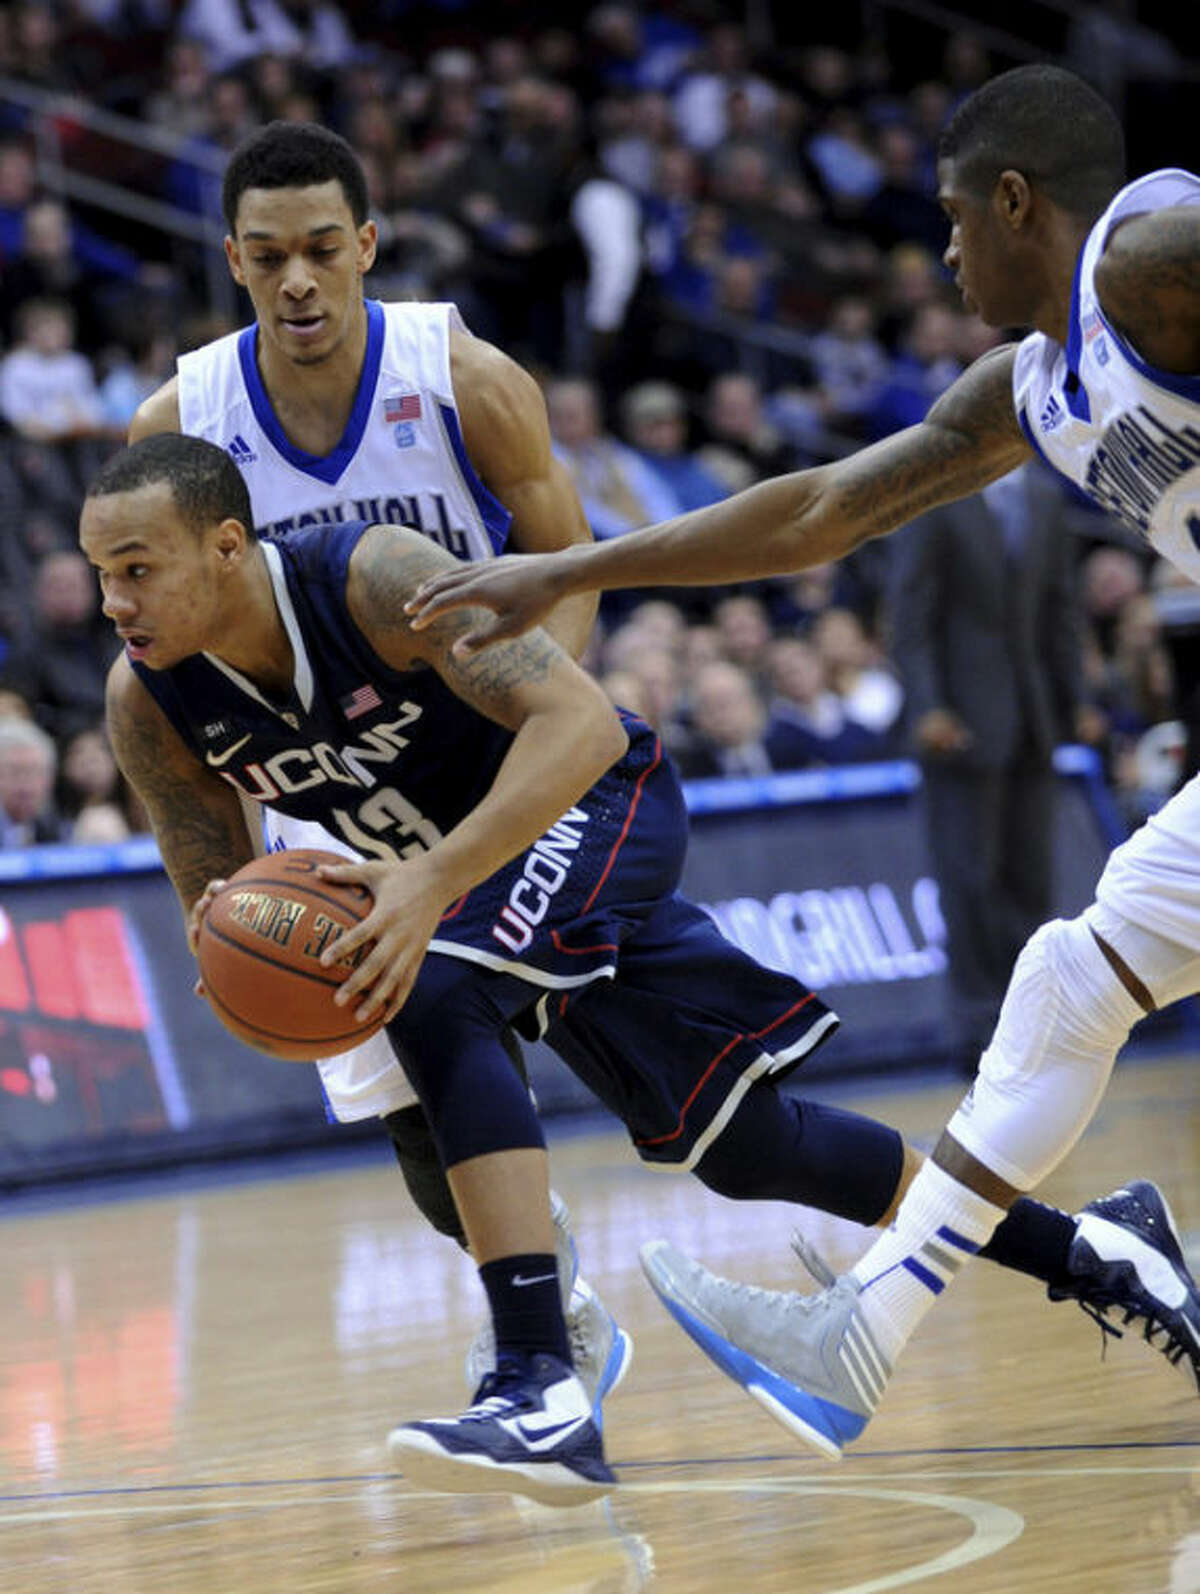 Connecticut's Shabazz Napier (13) drives to the basket between Seton Hall's Tom Maayan and Aaron Cosby, right, during the first half of an NCAA college basketball game Sunday, Feb. 10, 2013, in Newark, N.J. Connecticut won 78-67. (AP Photo/Bill Kostroun)